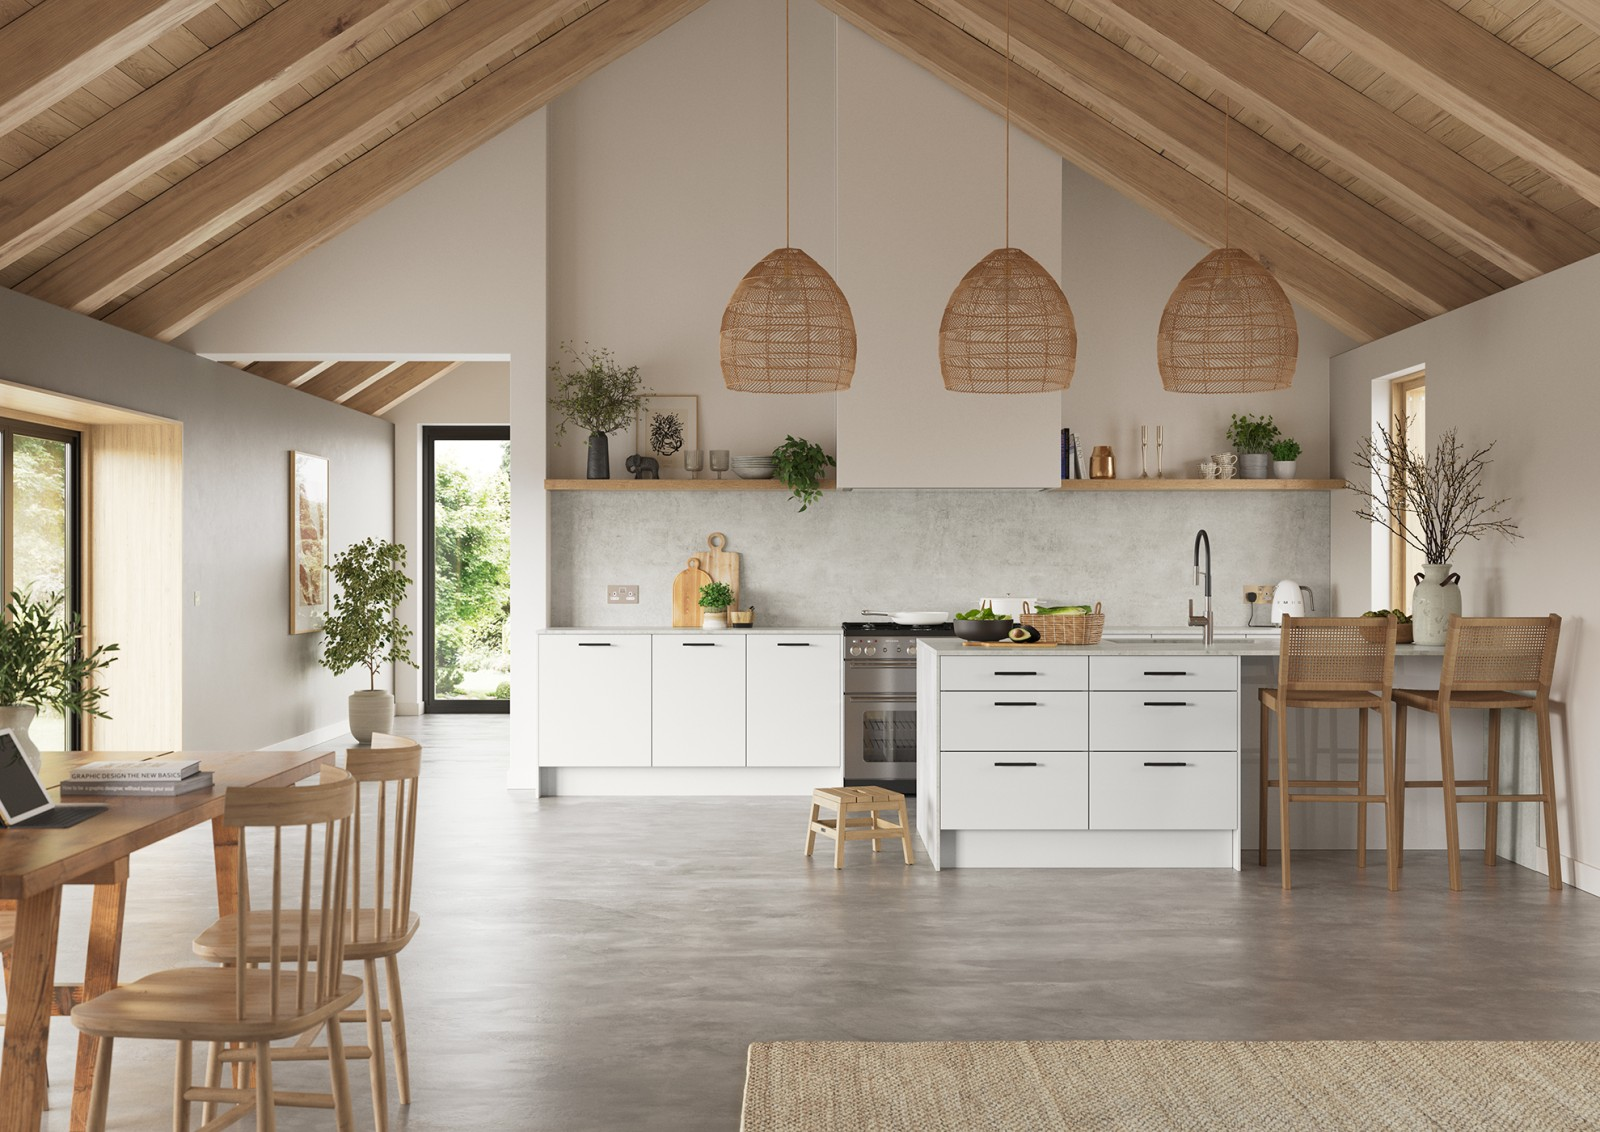 Hoxton kitchen. Smooth slab doors in a painted effect finish. Minimalist styling with your choice of handles and three colours.